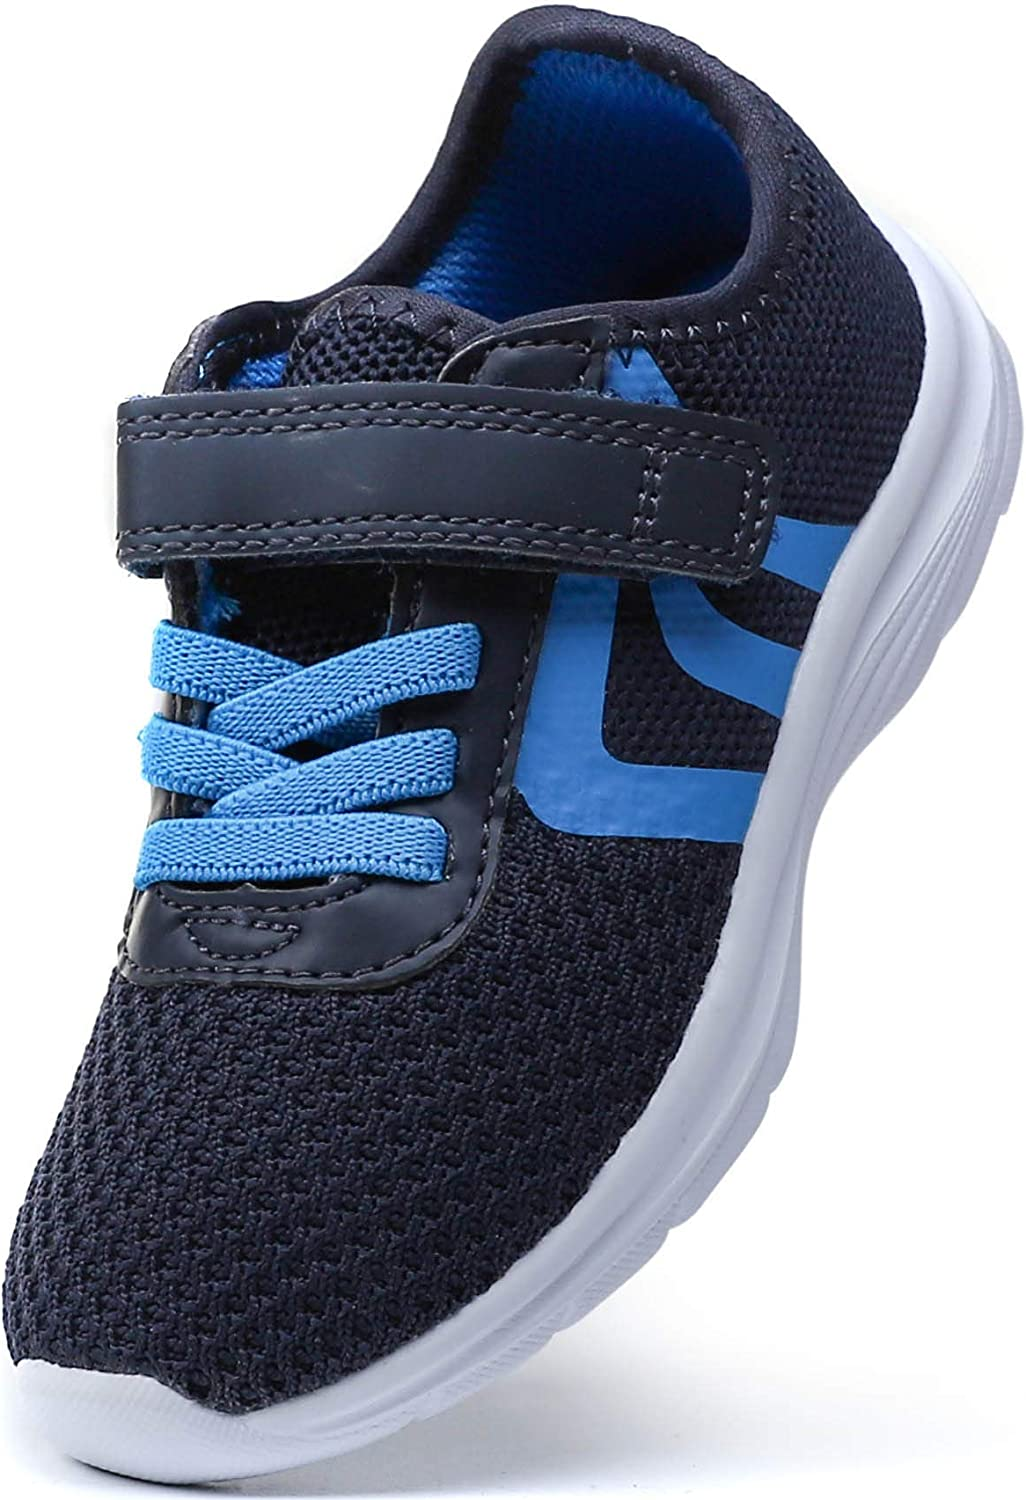 PresaNew Toddler Lightweight Breathable Running Shoes Casual Fashion Sneakers for Little Kid Boys Girls